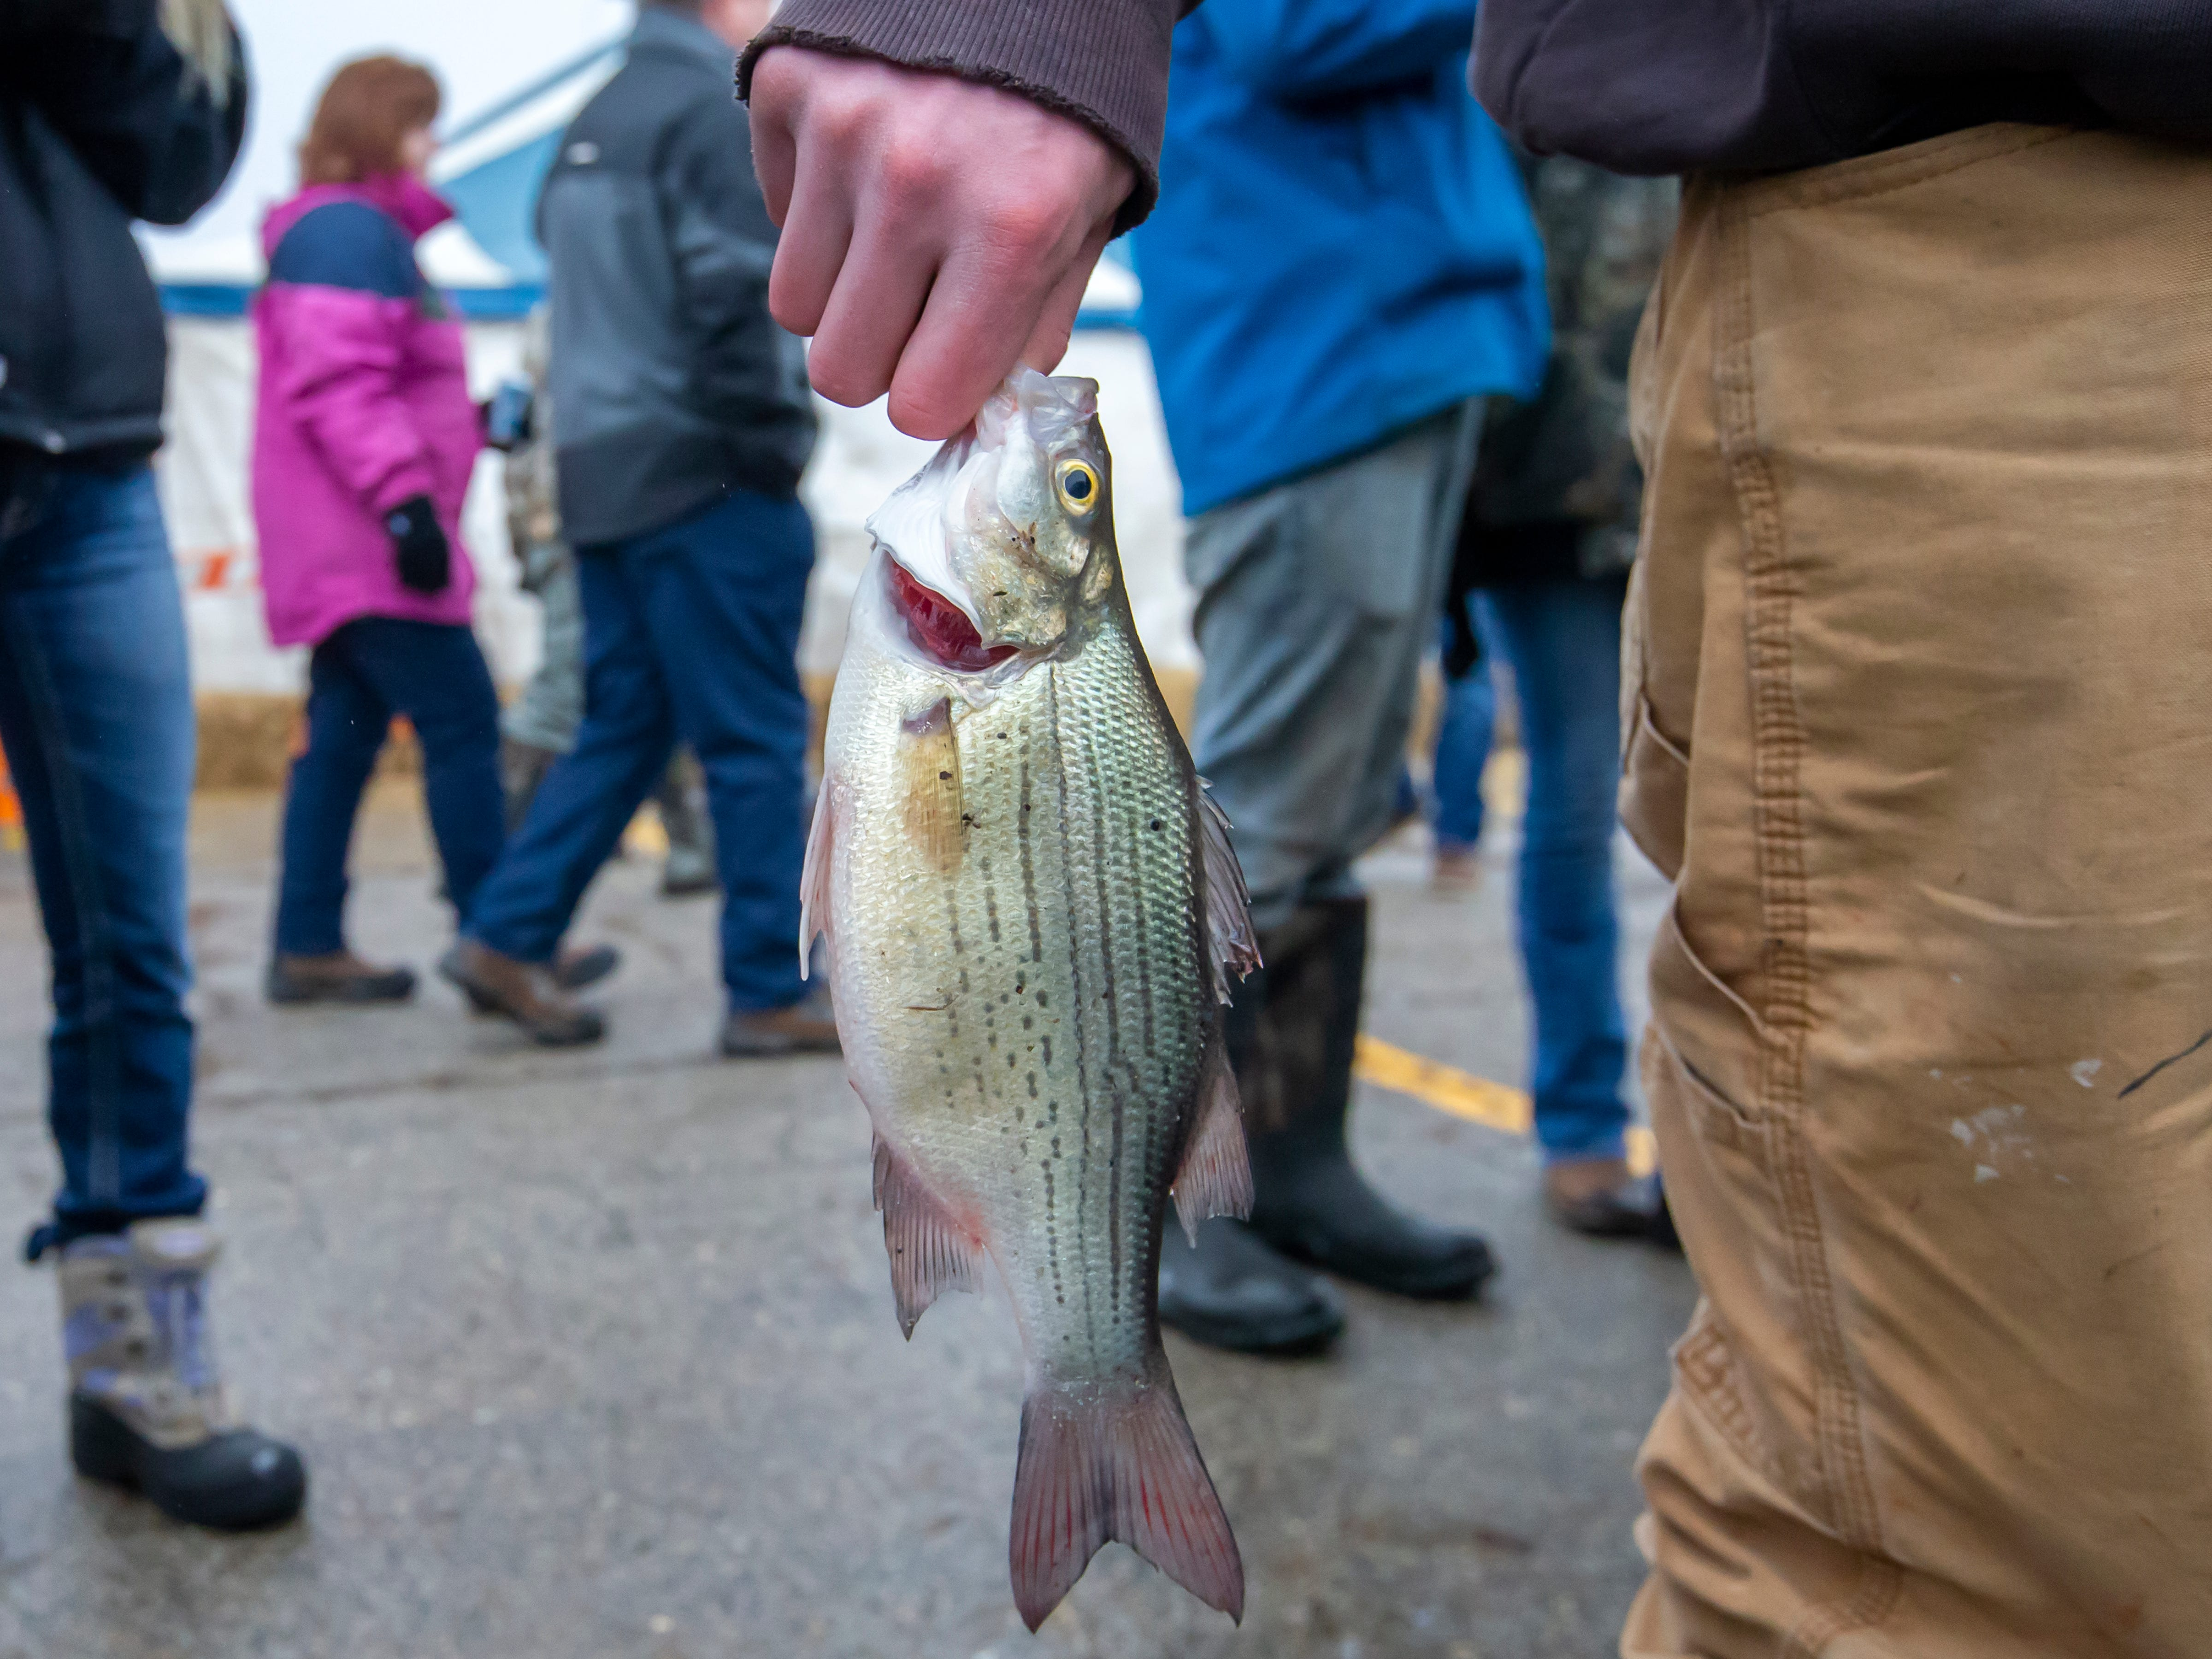 Garrick Garvens holds his fish to enter into the contest in the Otter Street Fishing Club Winter Fisheree at Miller's Bay in Menominee Park on Saturday, Feb. 2, 2019.